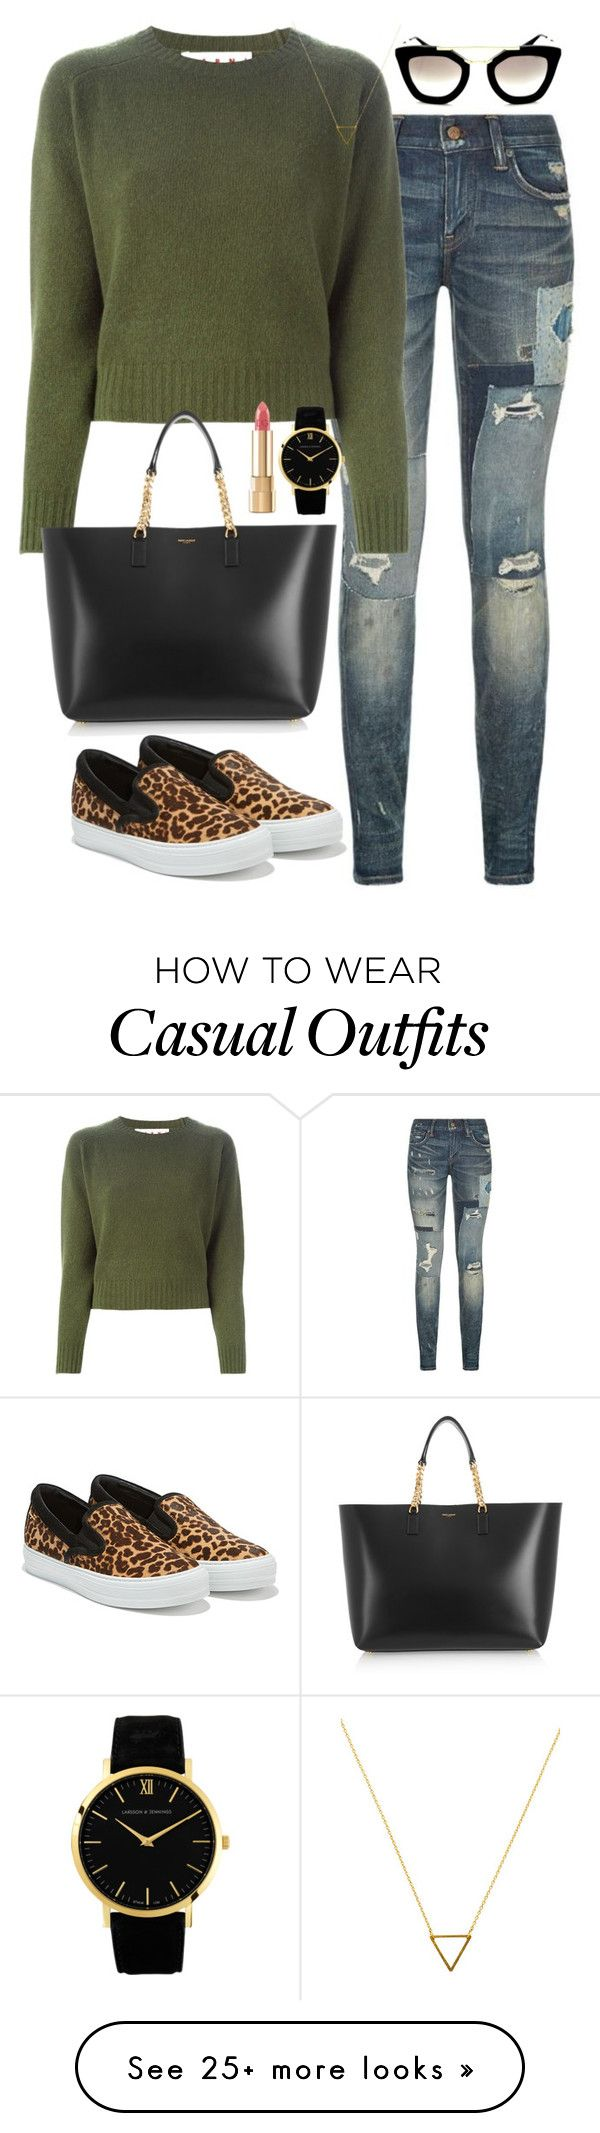 """Casual girl"" by miiaemiliaa on Polyvore featuring Polo Ralph Lauren, Marni, Salvatore Ferragamo, Yves Saint Laurent, Dolce&Gabbana, Larsson & Jennings, Wanderlust + Co and Prada"